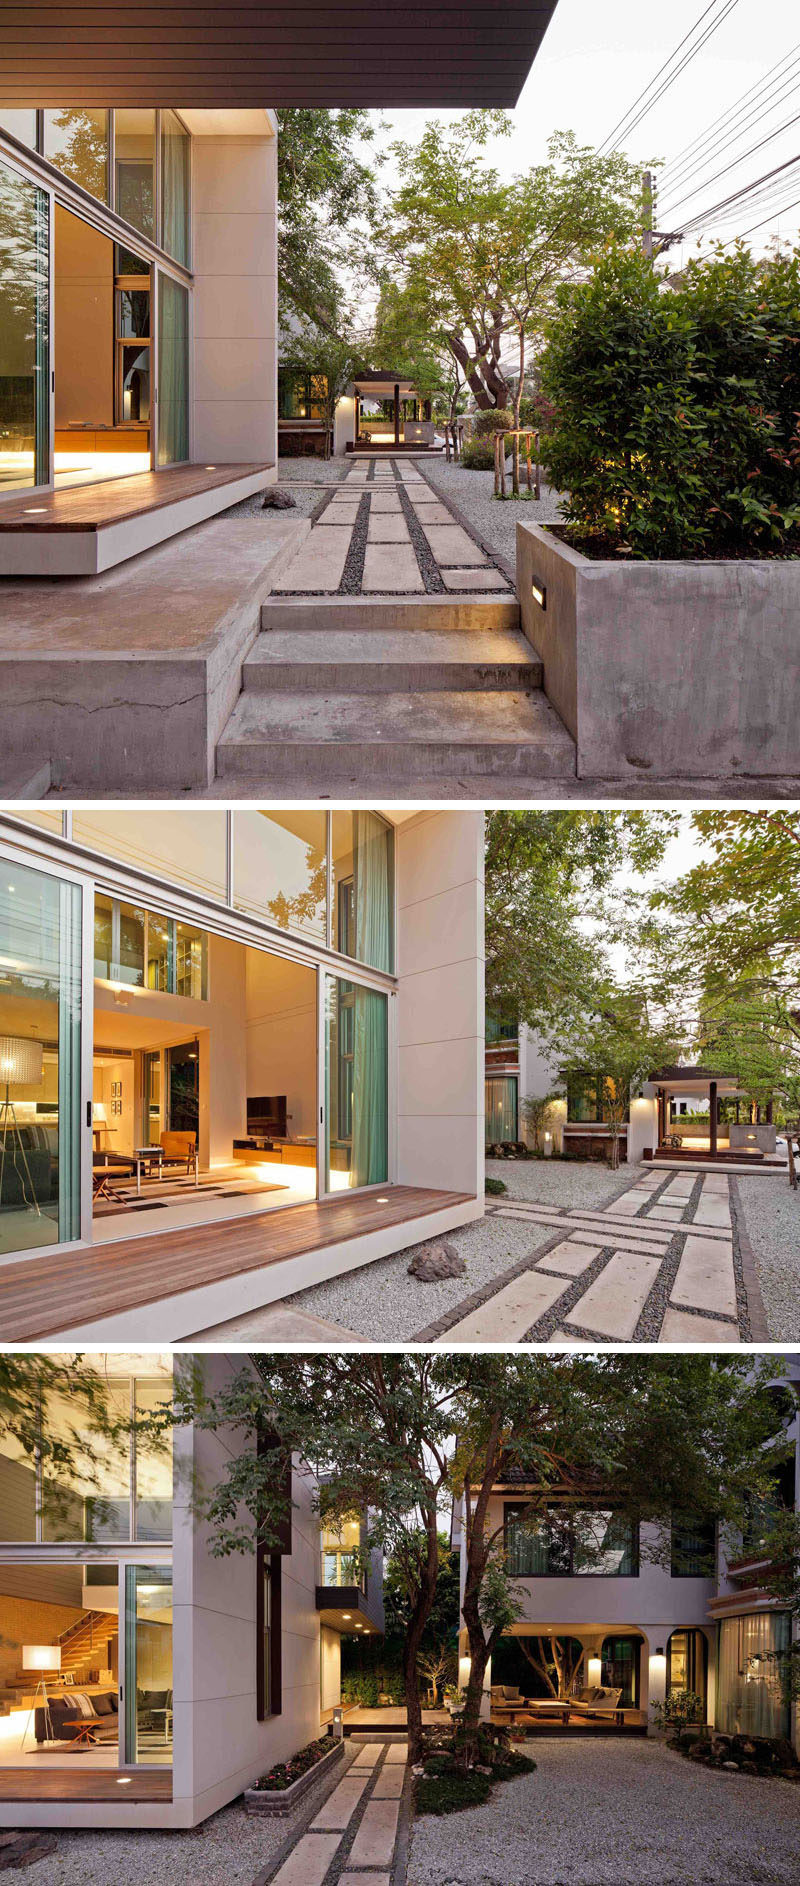 This modern house in Thailand has landscaped paths connecting different areas of the home.